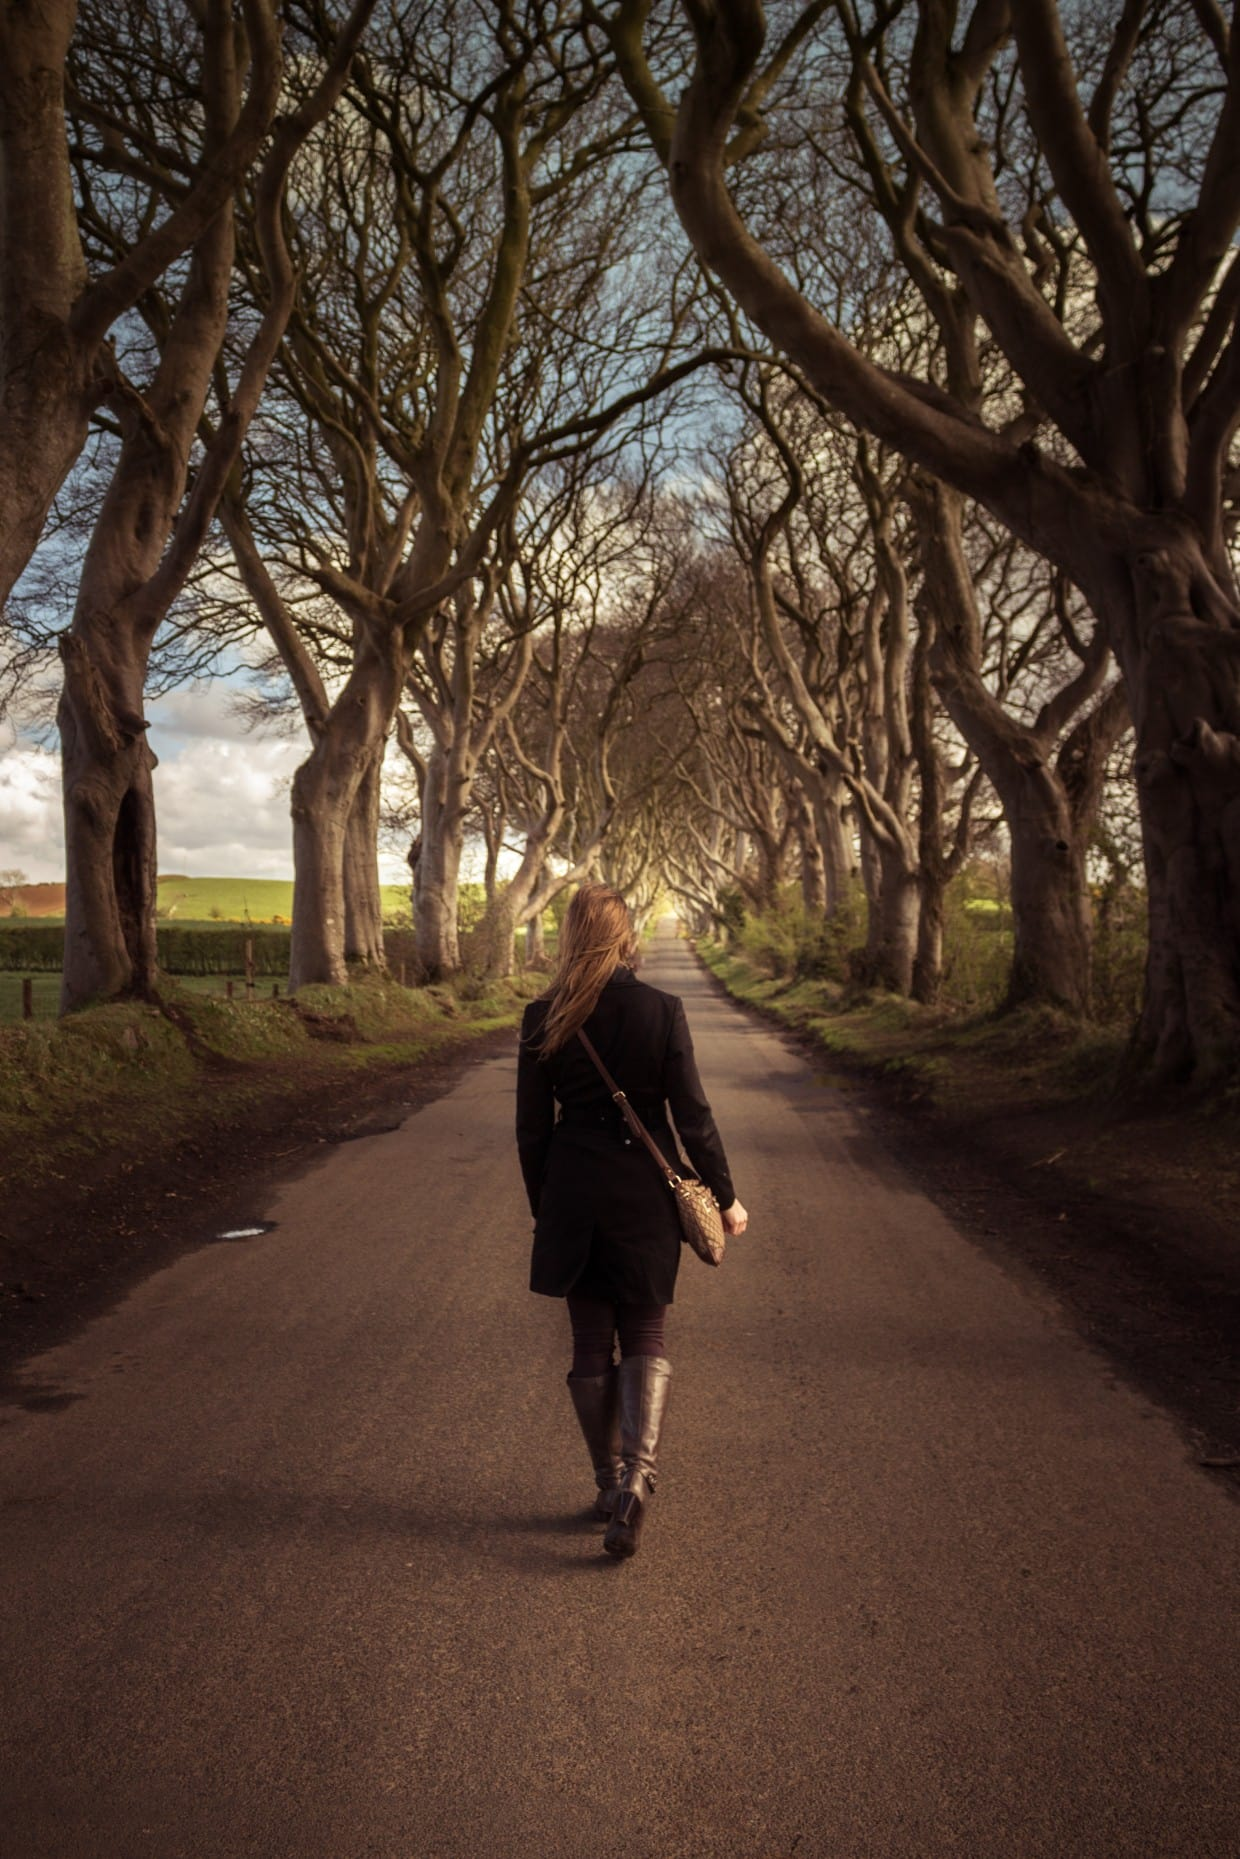 Me walking under the dark hedges, Northern Ireland